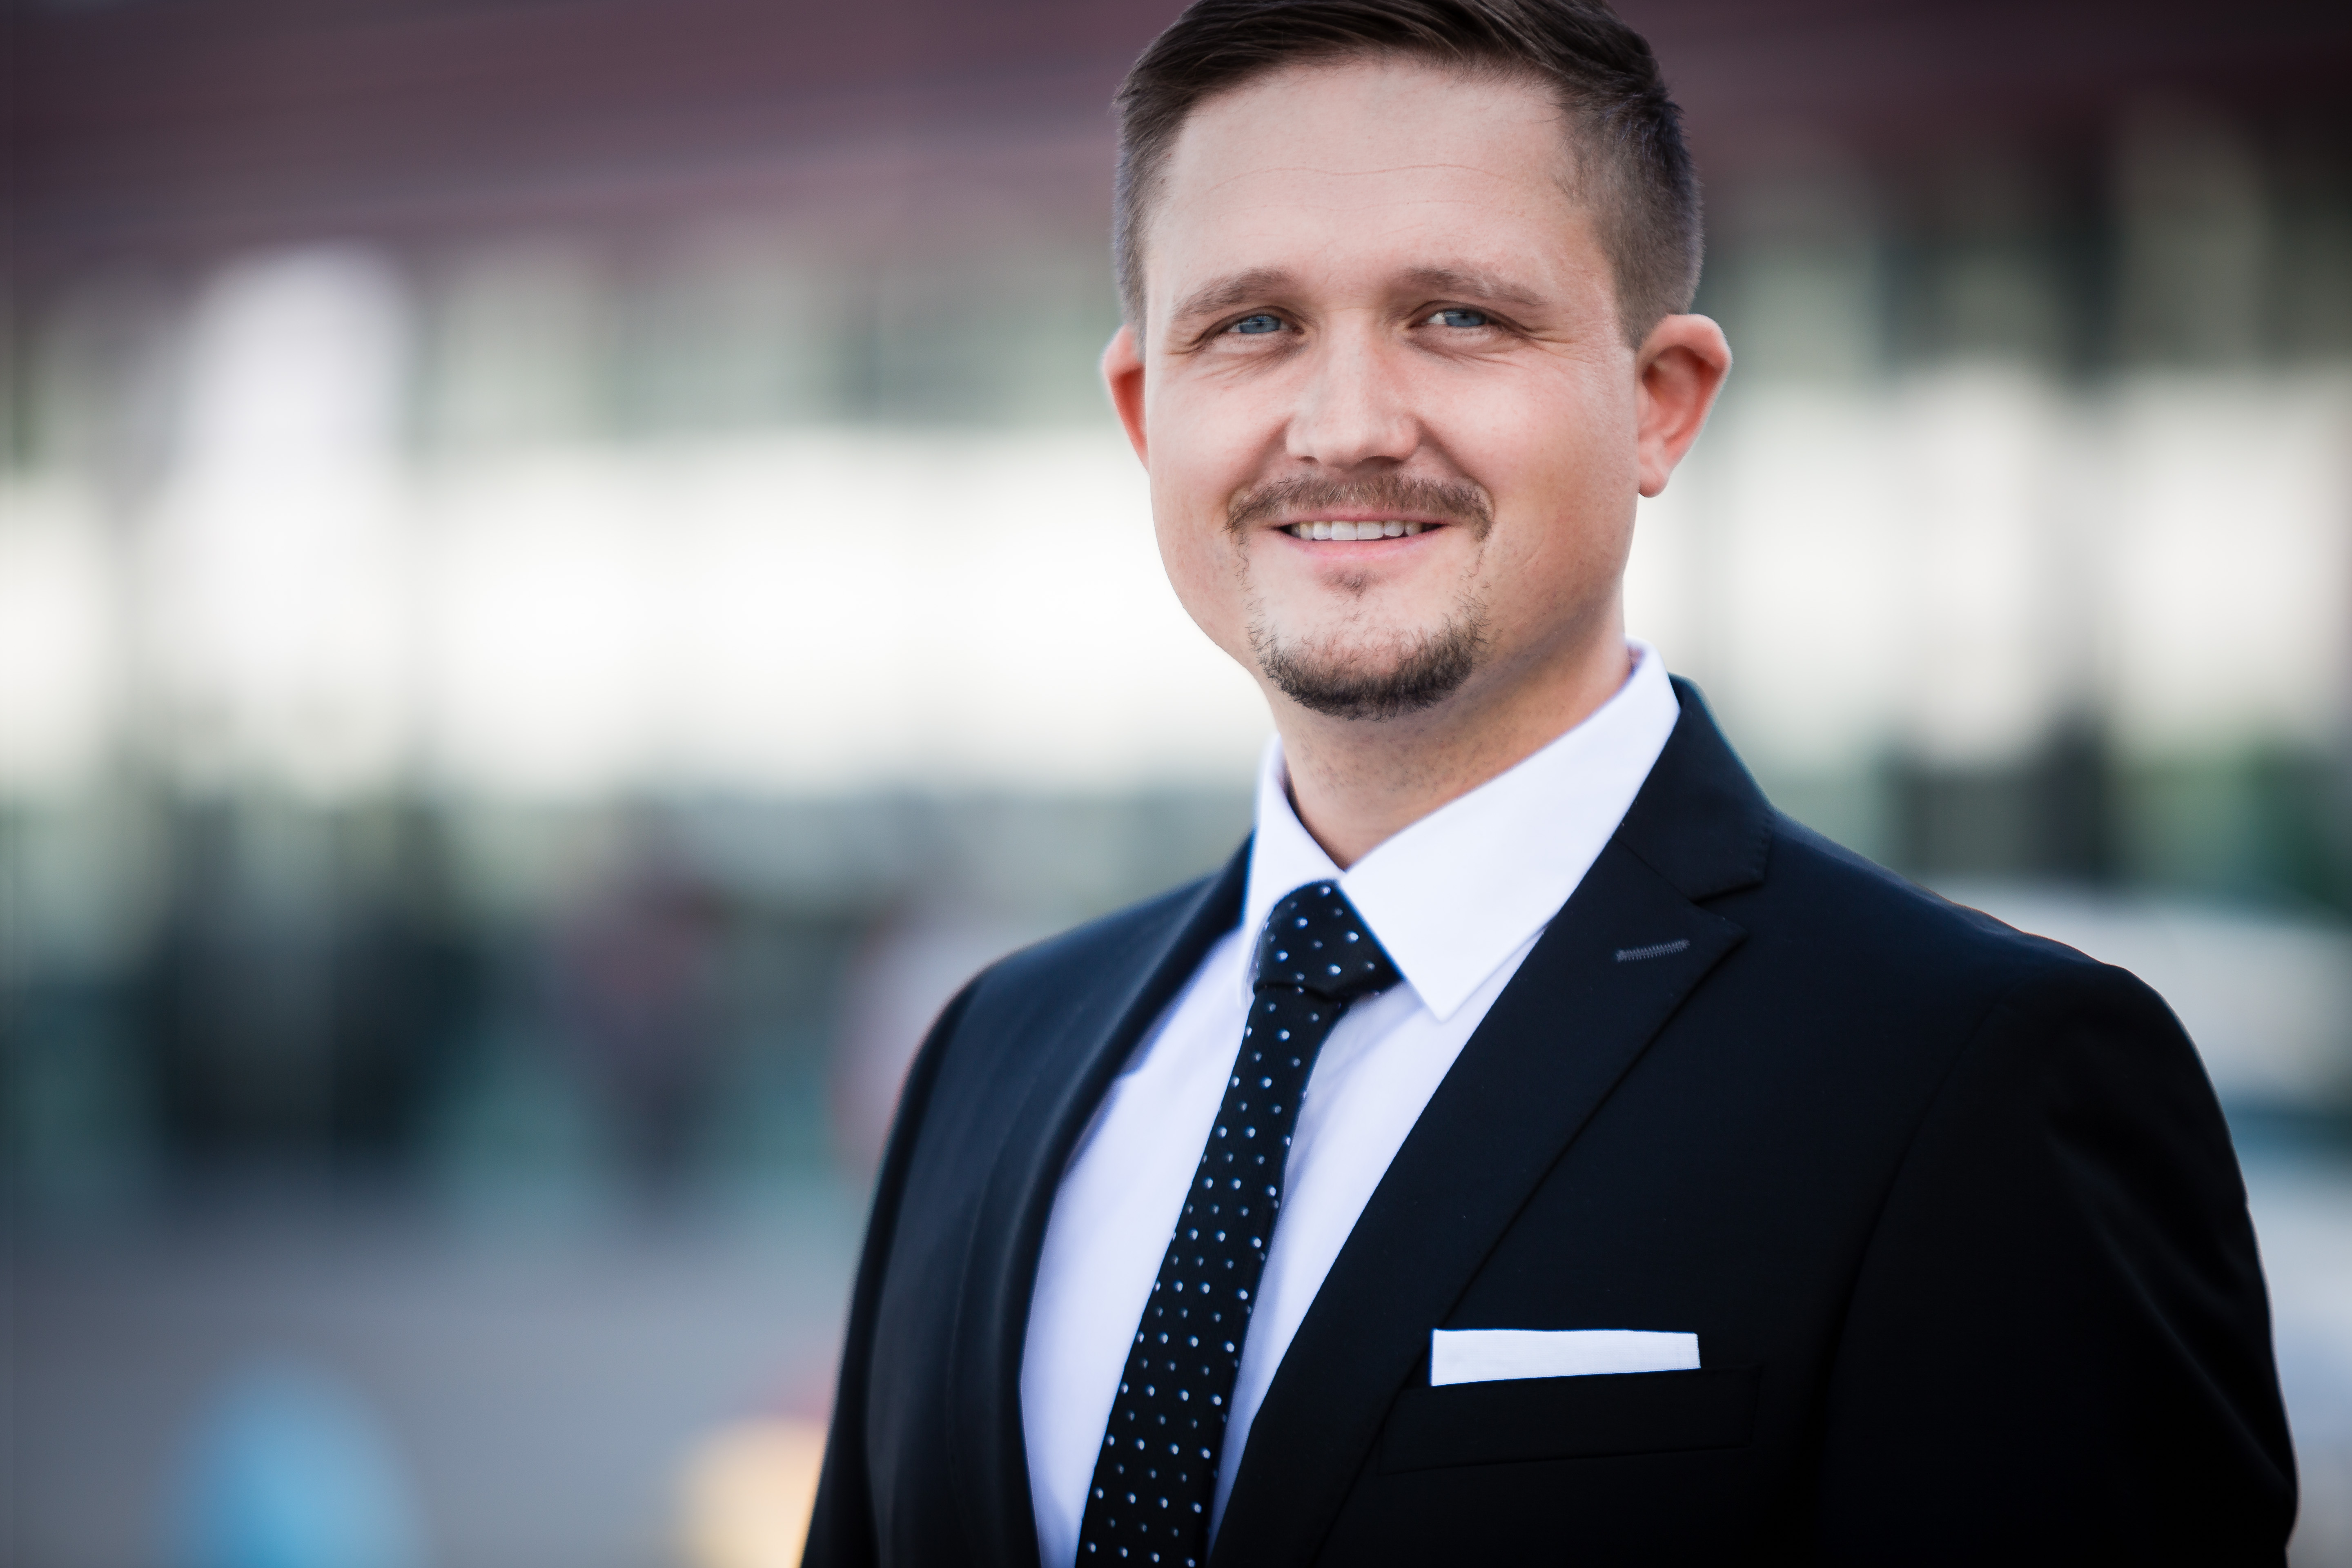 smoope im Gespräch: Andreas Lackmann, Recruiting Strategy and Process Consultant, über die Digitalisierung des Recruiting-Prozesses